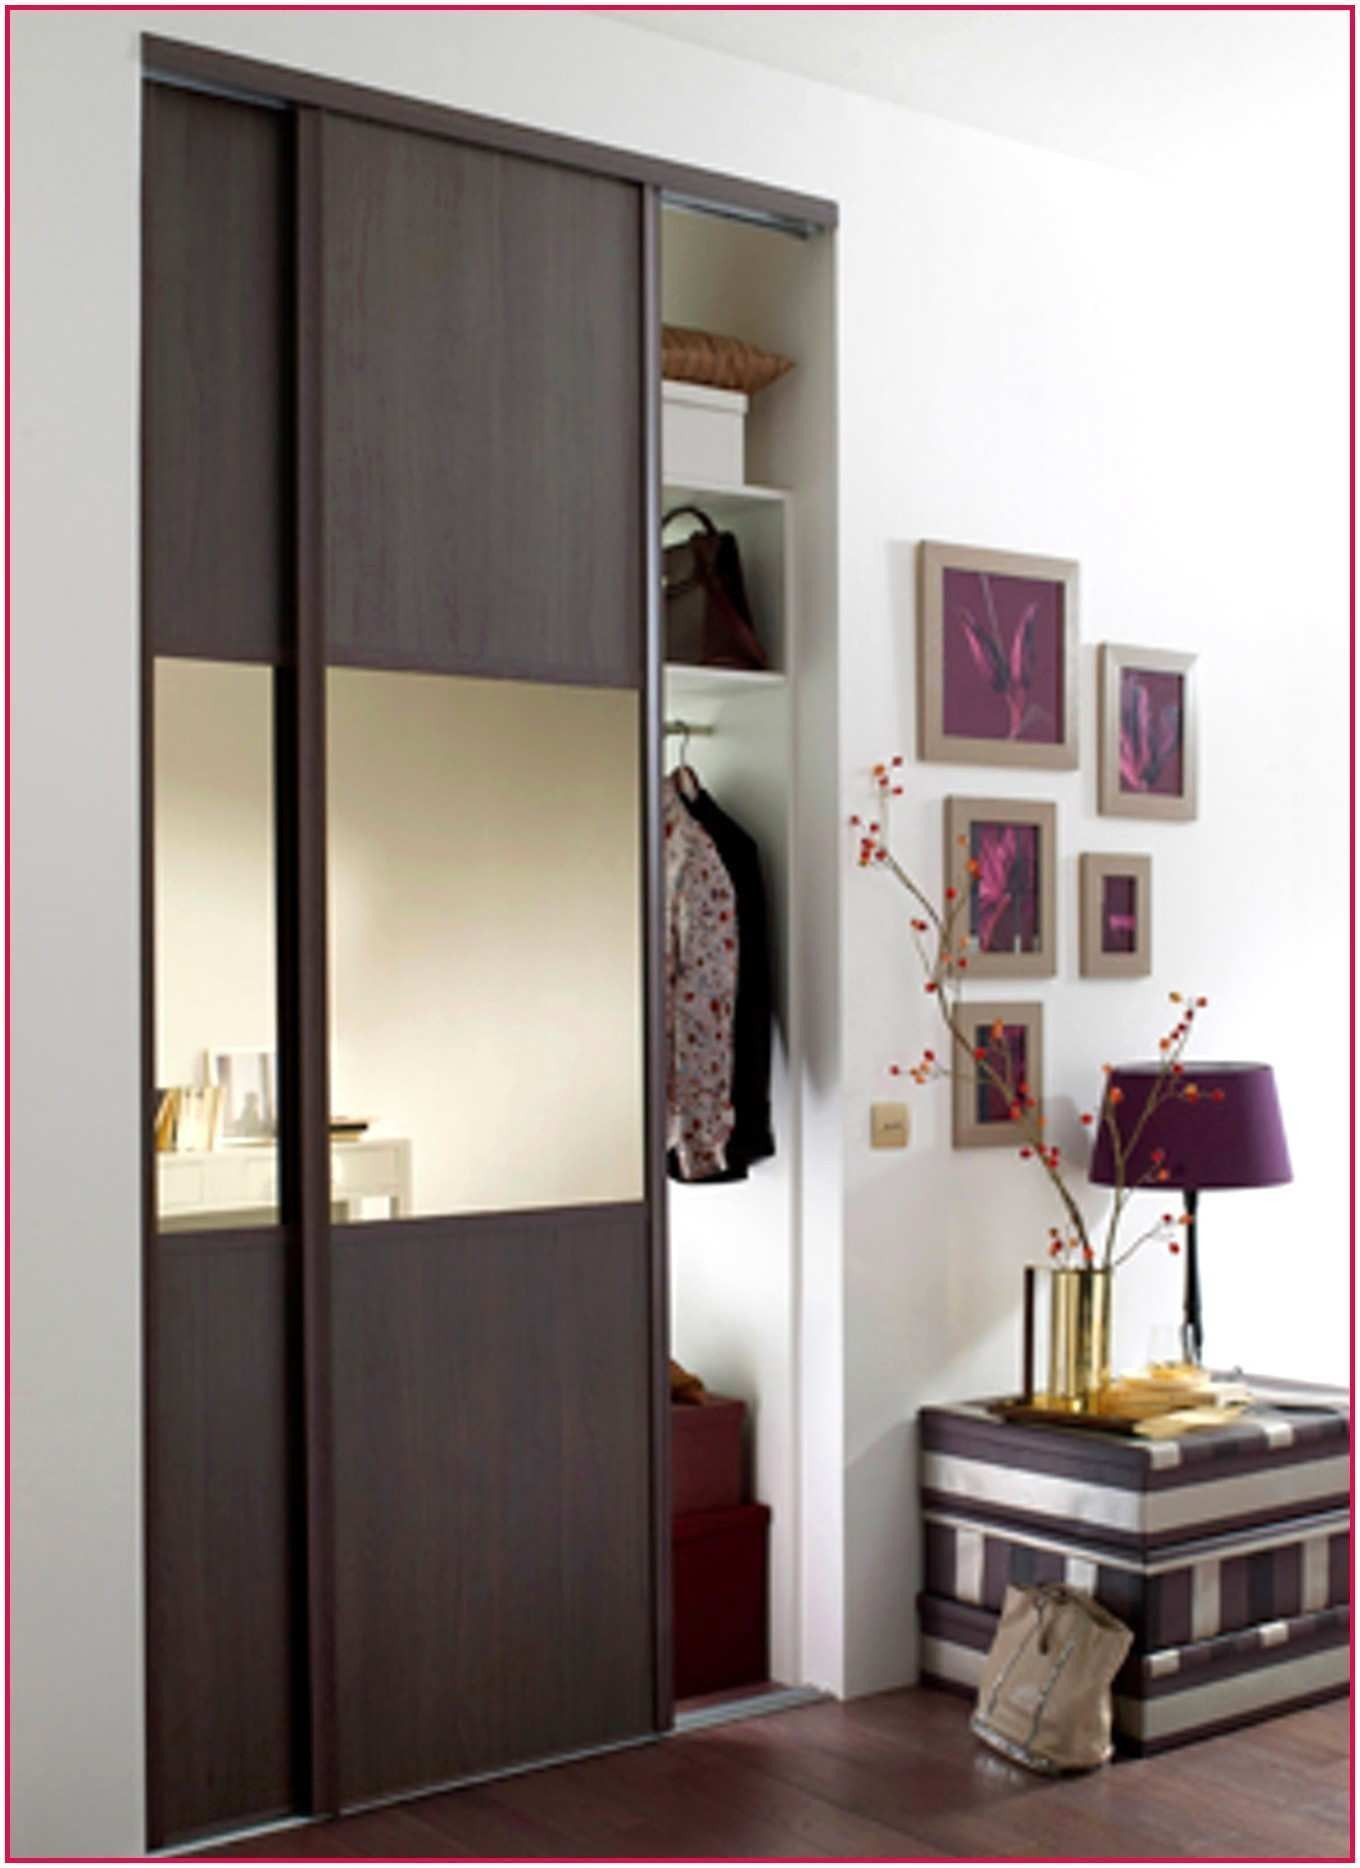 Armoire Penderie Porte Coulissante Ikea Kit Porte Coulissante Placard Ikea Davidreed Co